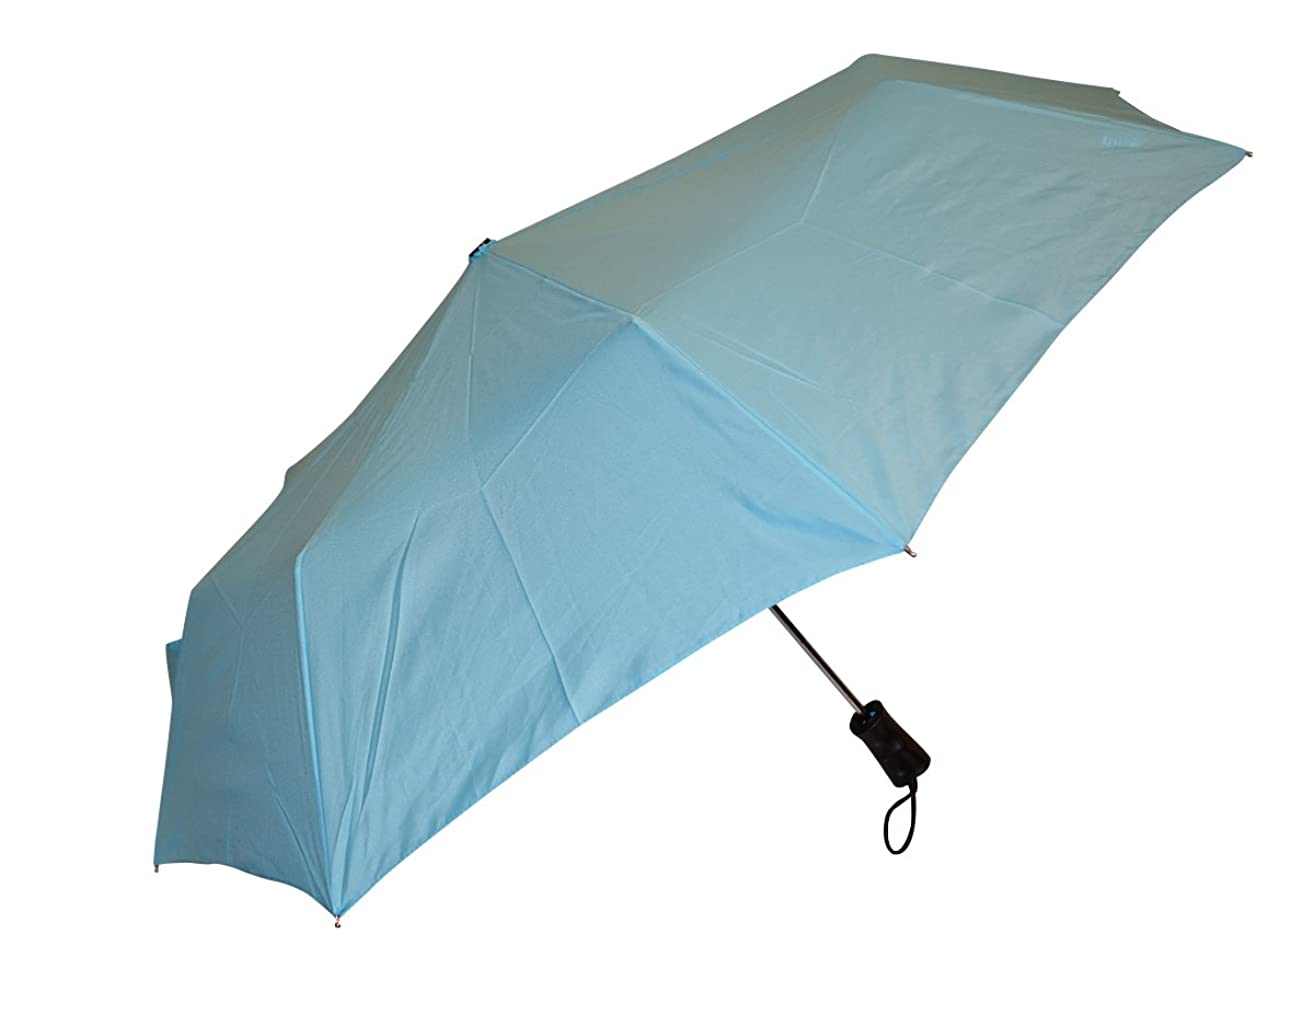 Totes Auto Open Sunguard Sun-Protection Umbrella With 42-inch Canopy Coverage and One-Handed Operation, 1 Pack